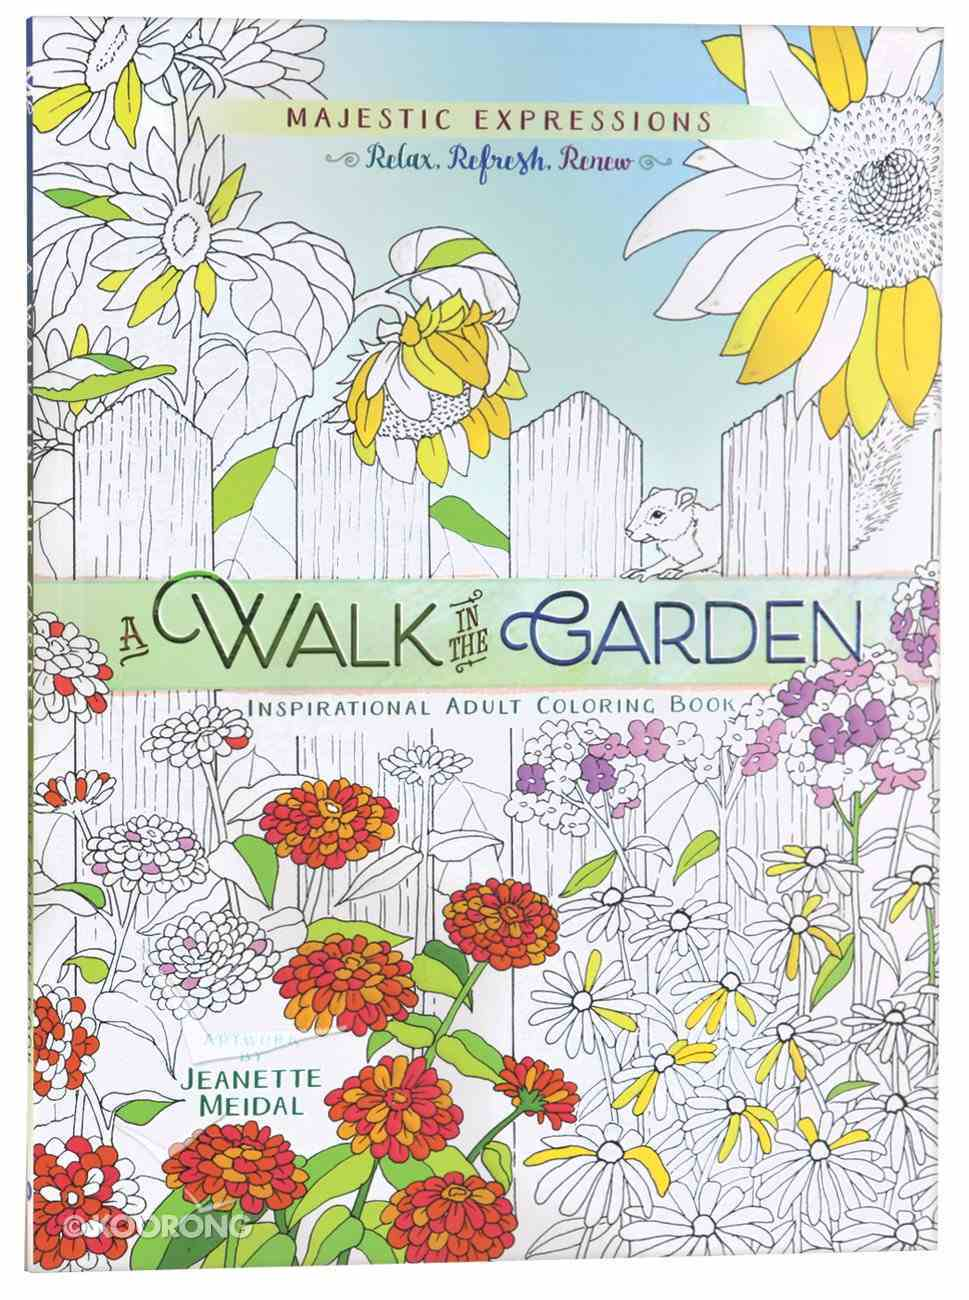 A Walk in the Garden (Majestic Expressions) (Adult Coloring Books Series) Paperback